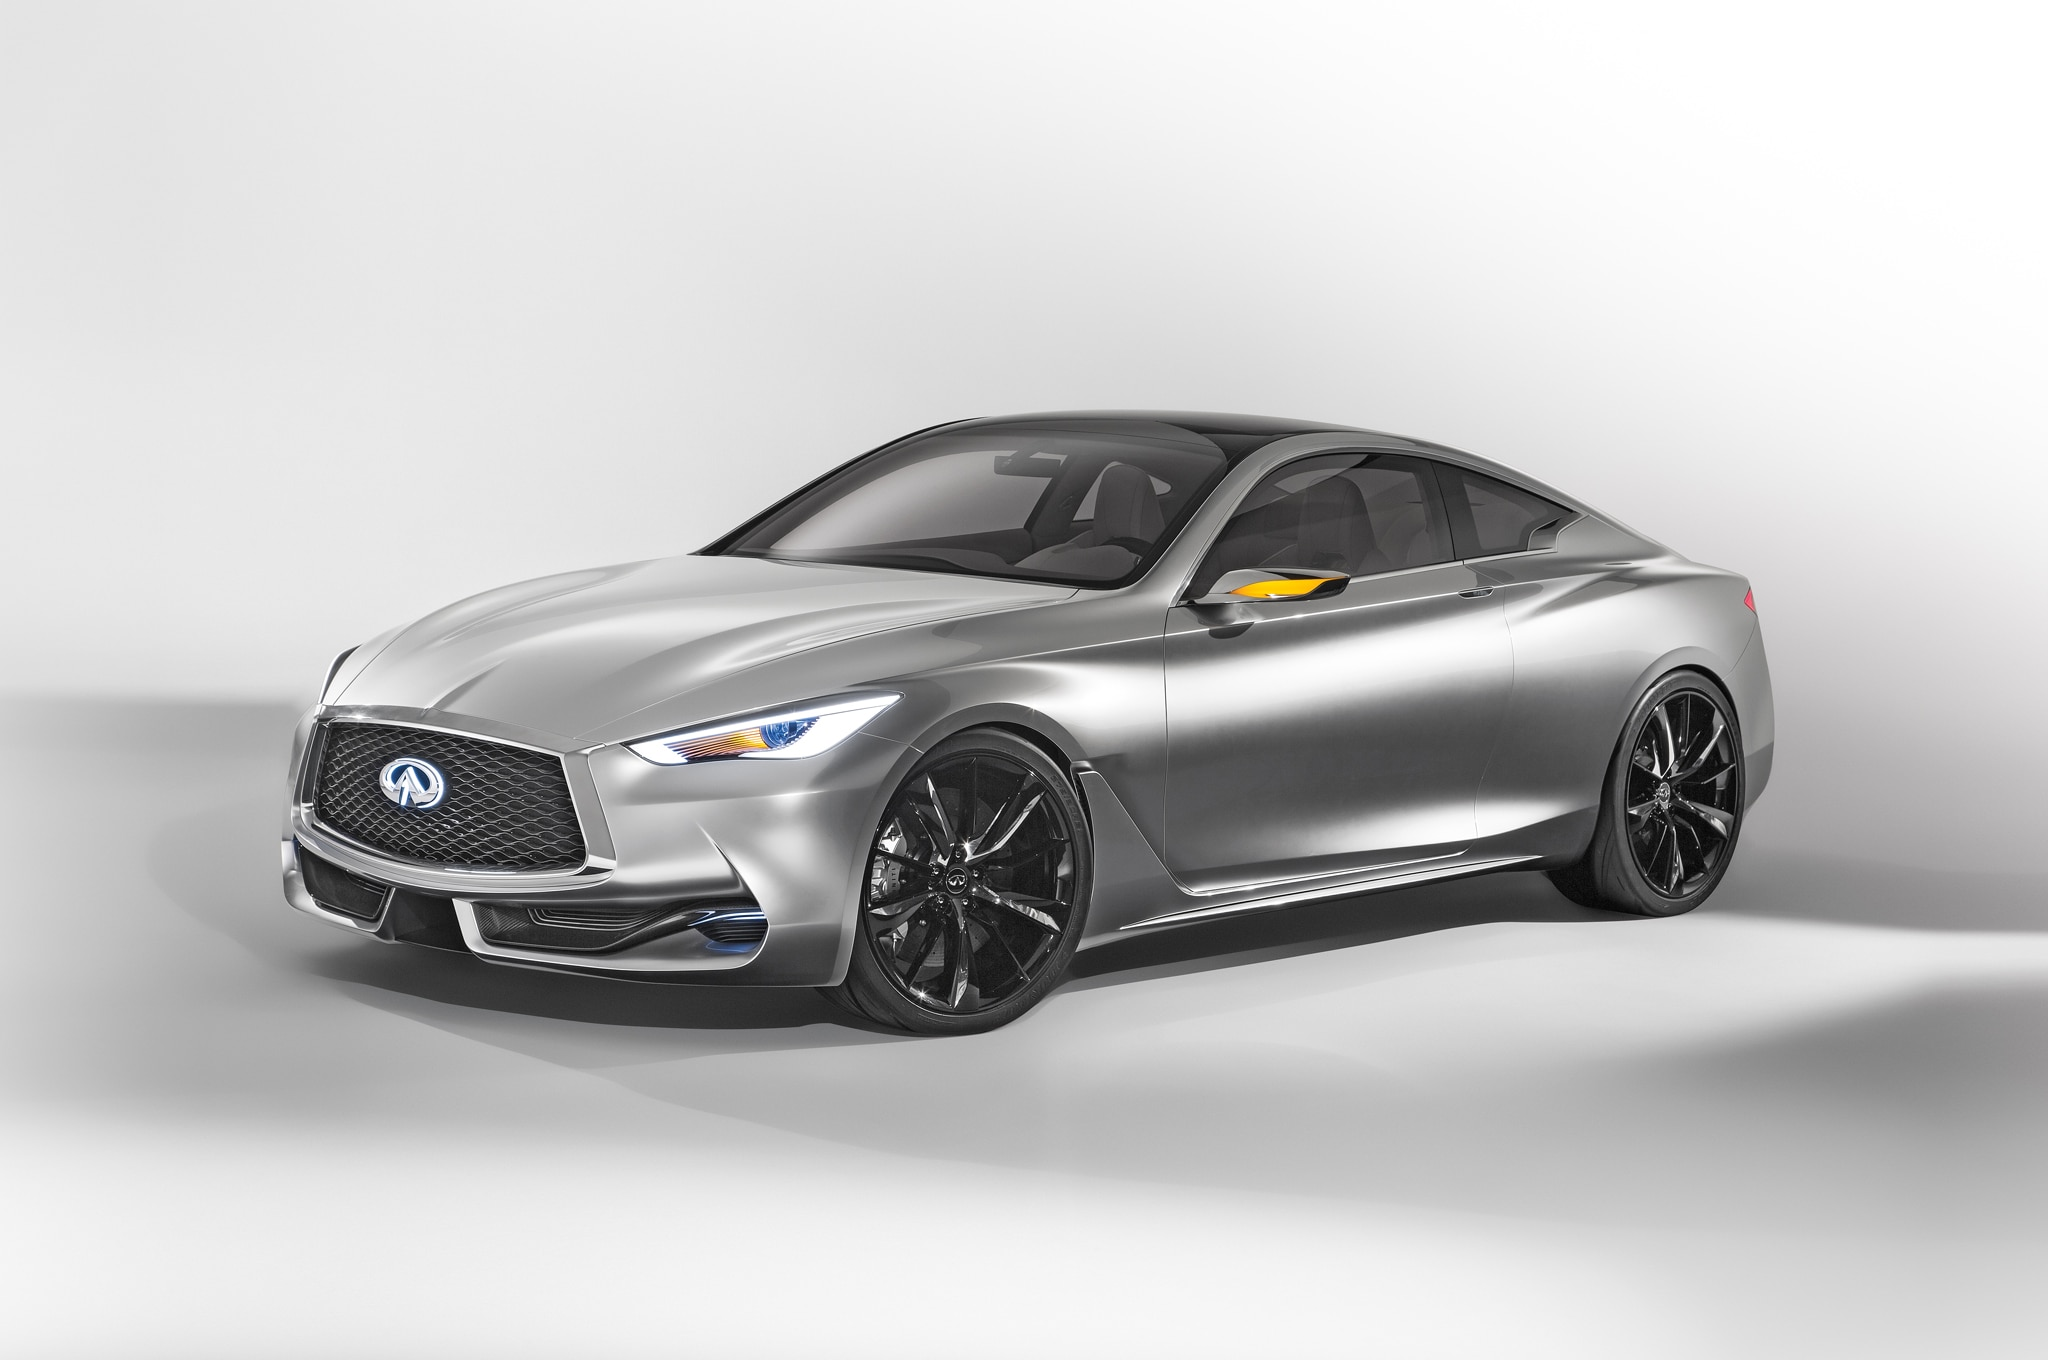 infiniti q60 blacked out. show more infiniti q60 blacked out